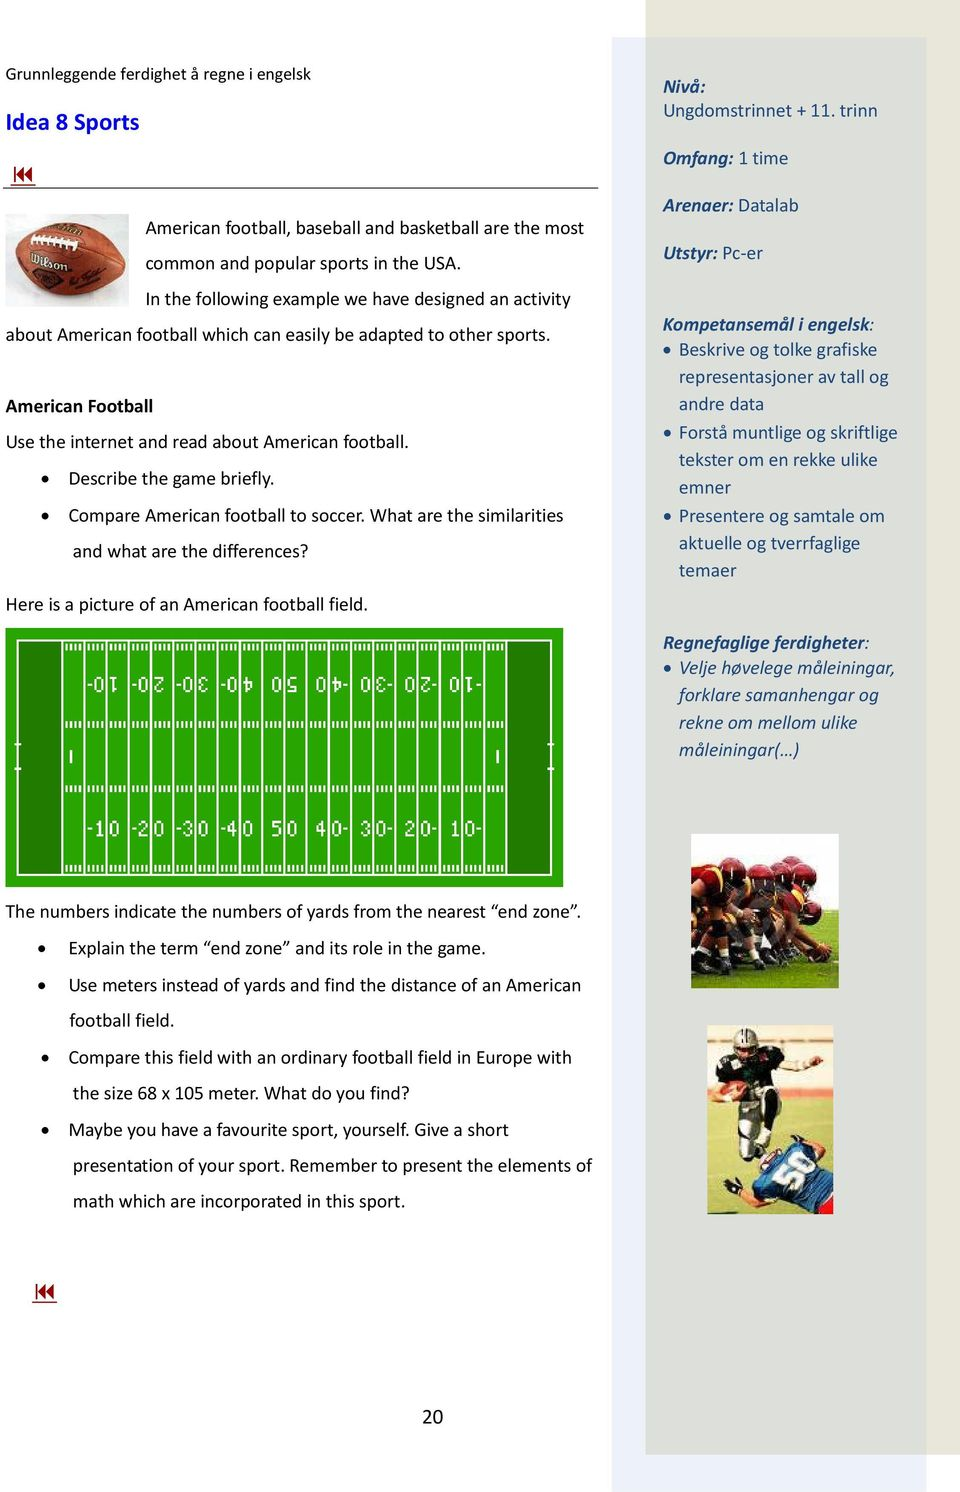 American Football Use the internet and read about American football. Describe the game briefly. Compare American football to soccer. What are the similarities and what are the differences?